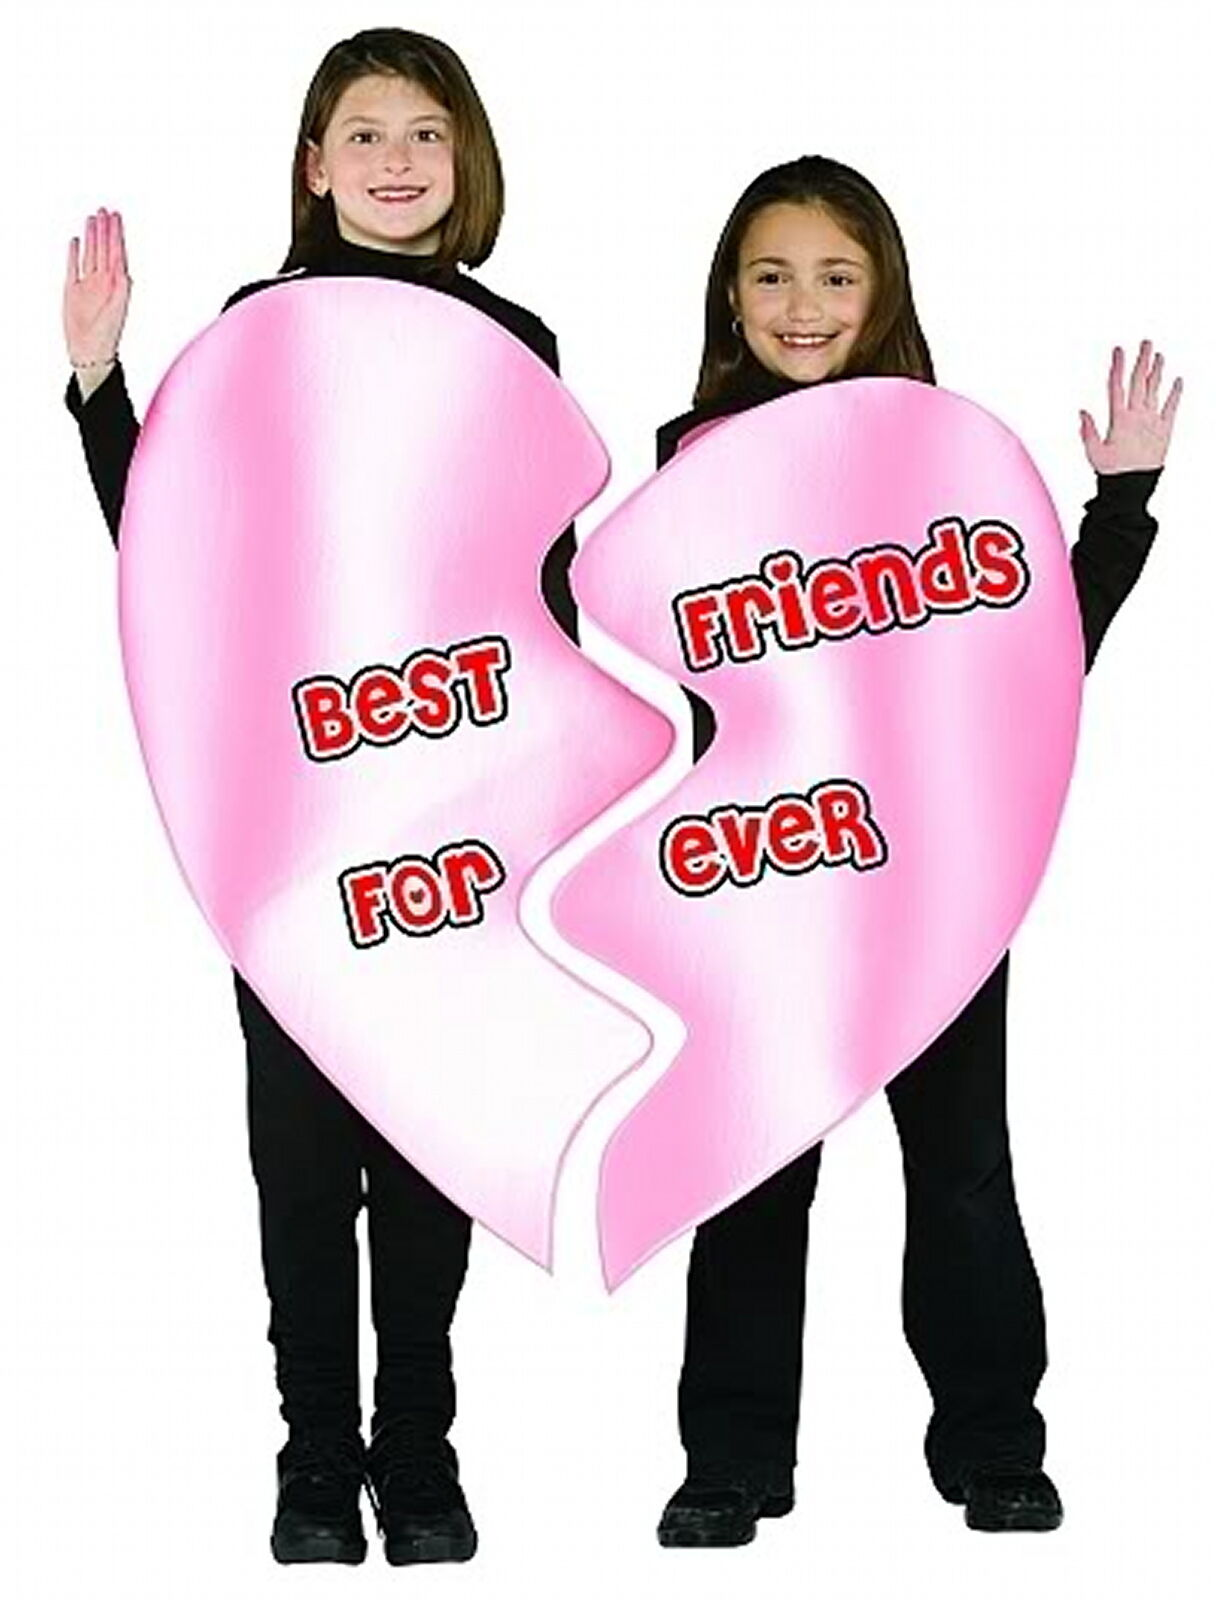 Dress up bffs forever pictures